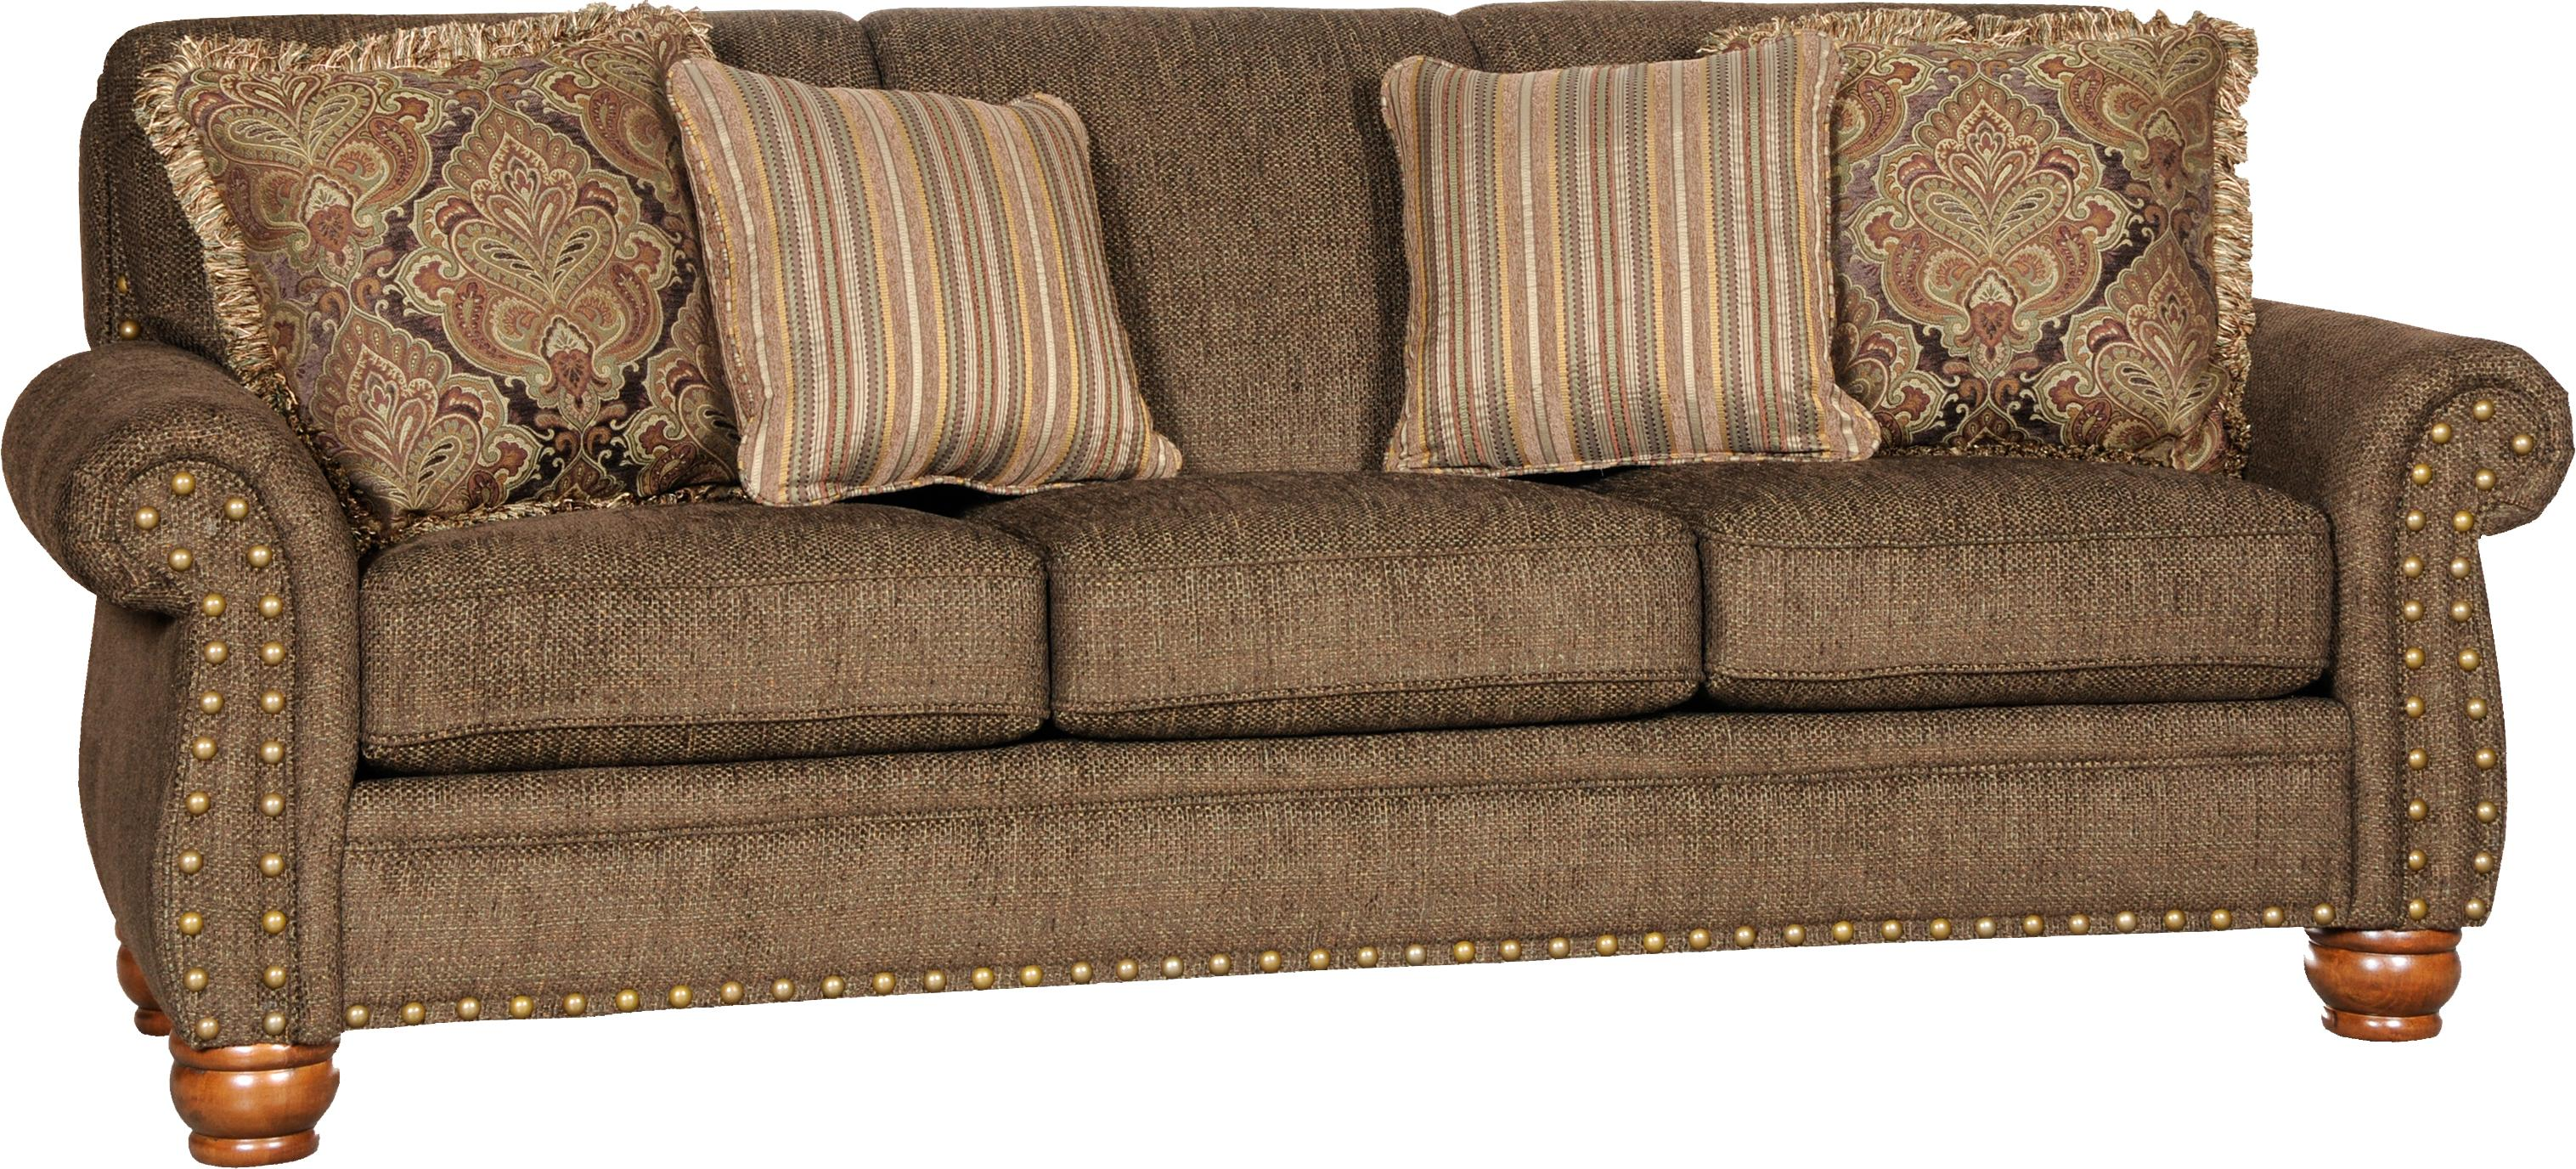 9780 Sofa by Mayo at Wilcox Furniture